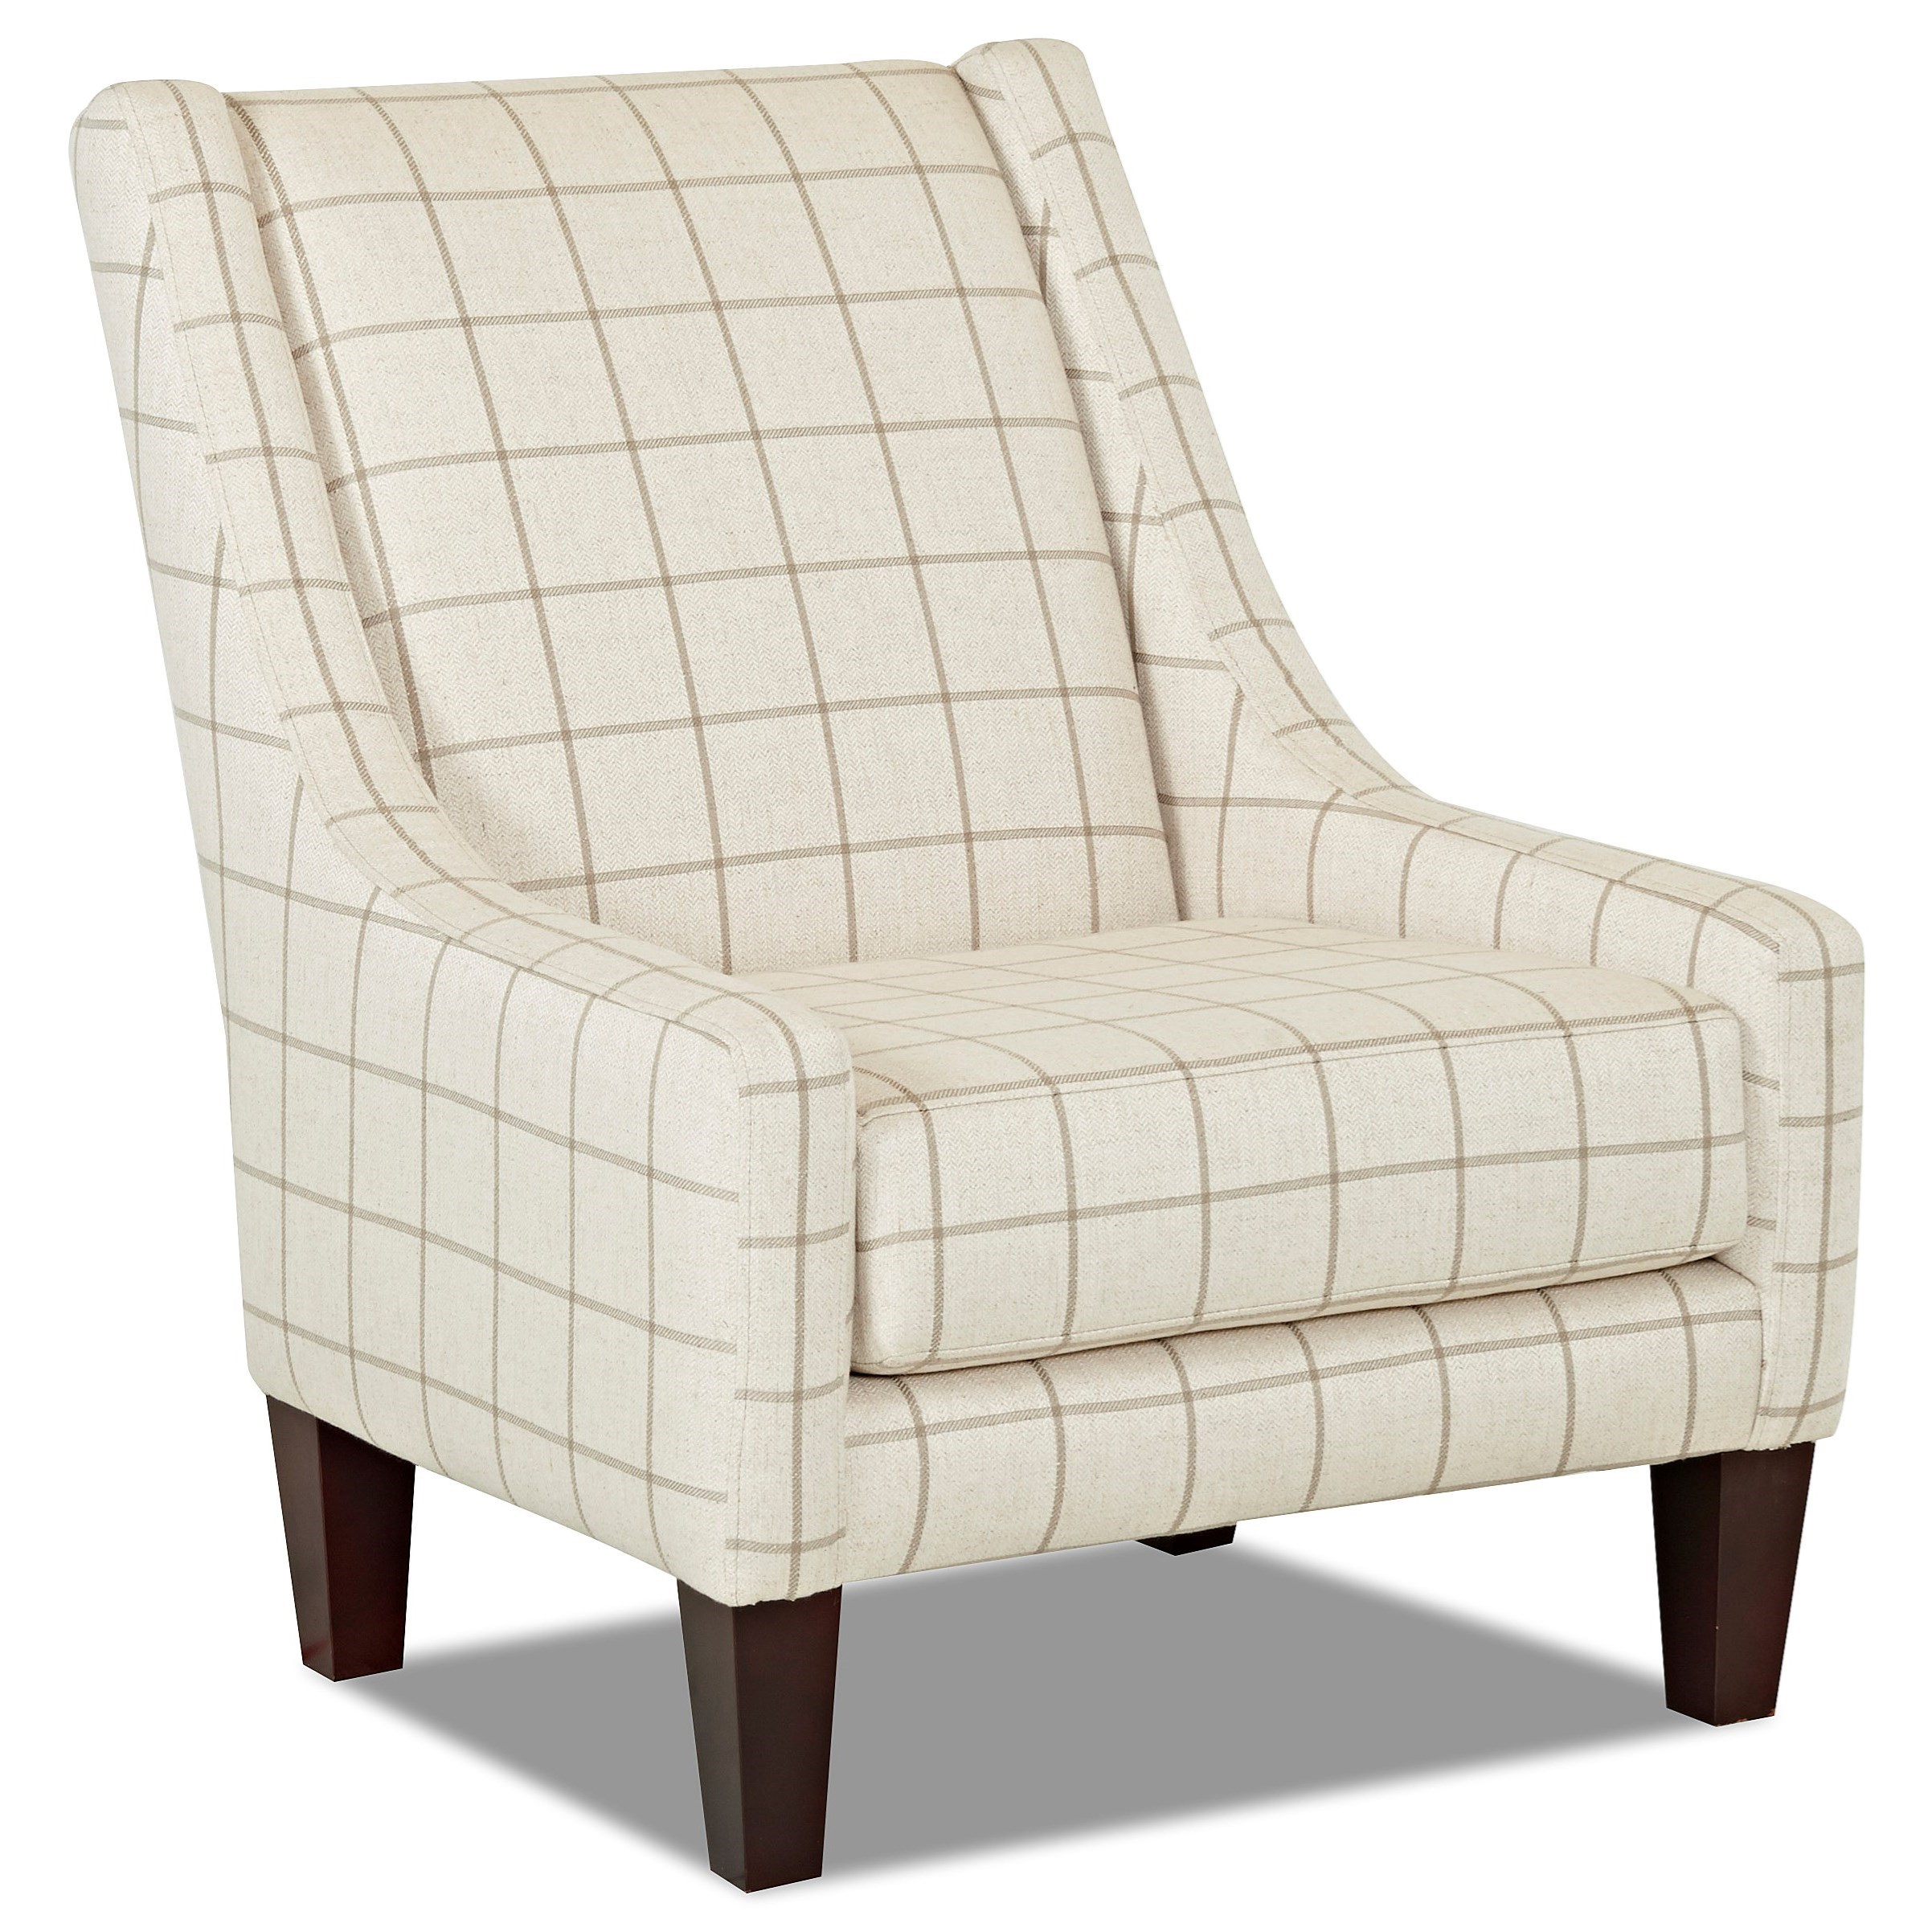 Transitional Occasional Chair with Sloping Back